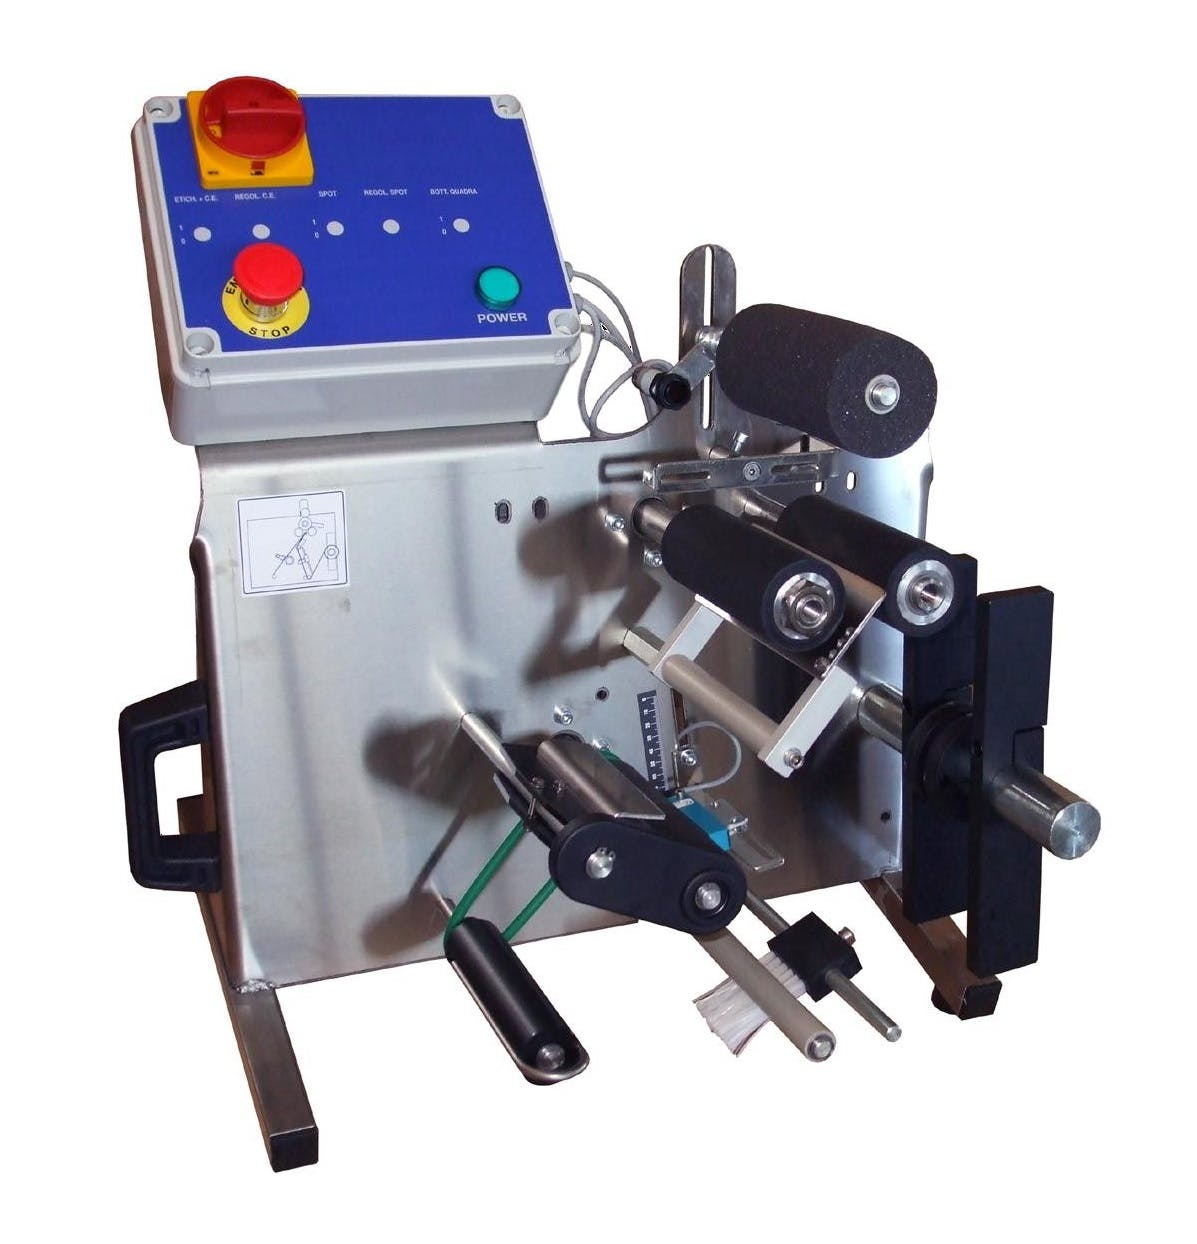 Semi-automatic labeler - sold by The Compleat Winemaker